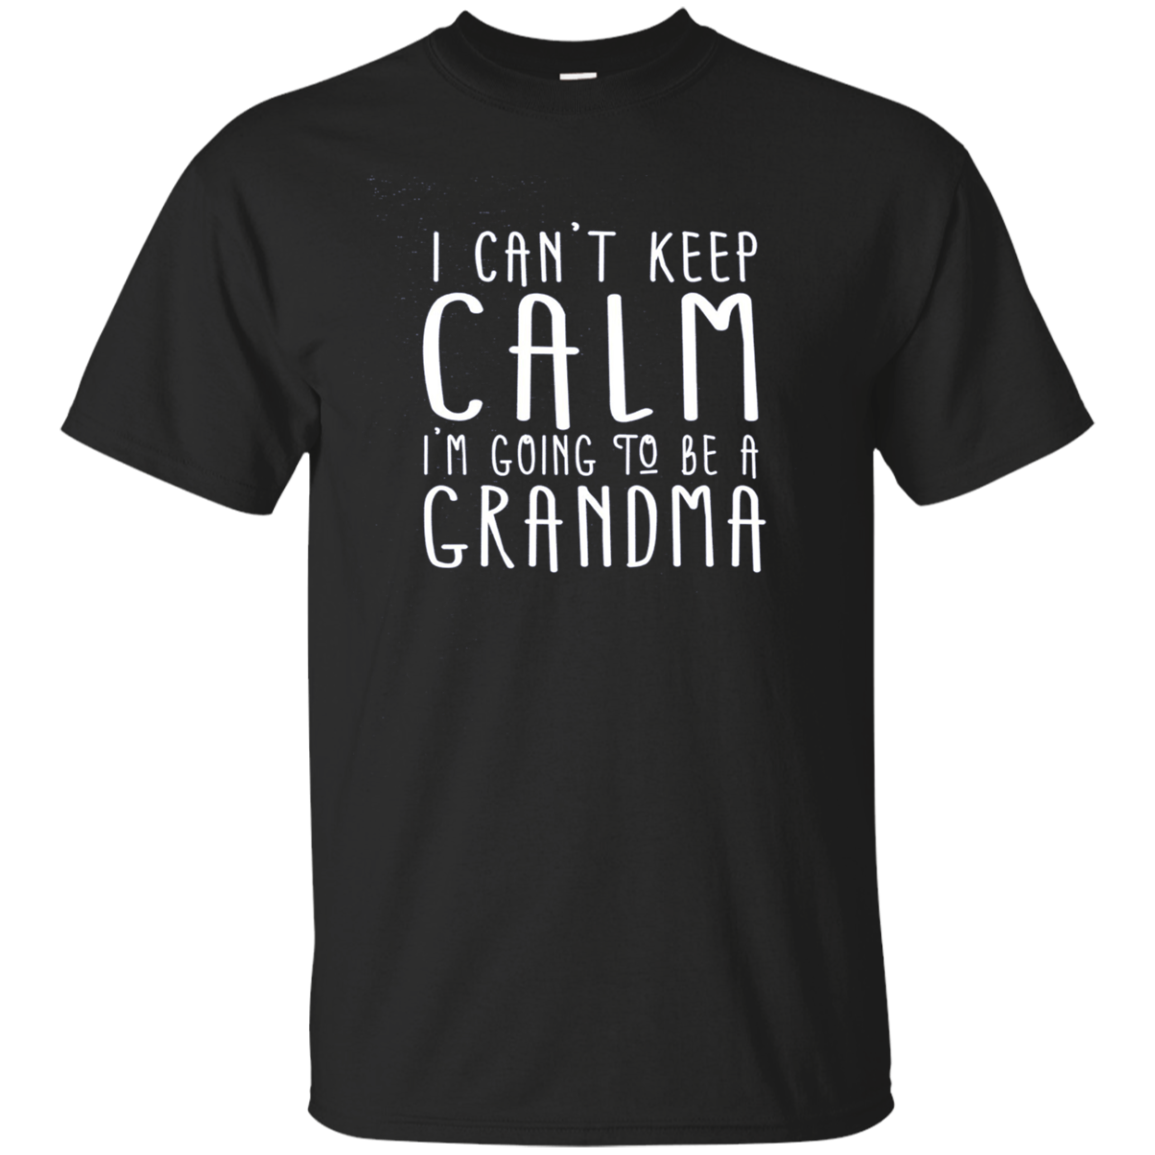 Womens I Can't Keep Calm I'm Going to be a Grandma T-Shirt - Gift